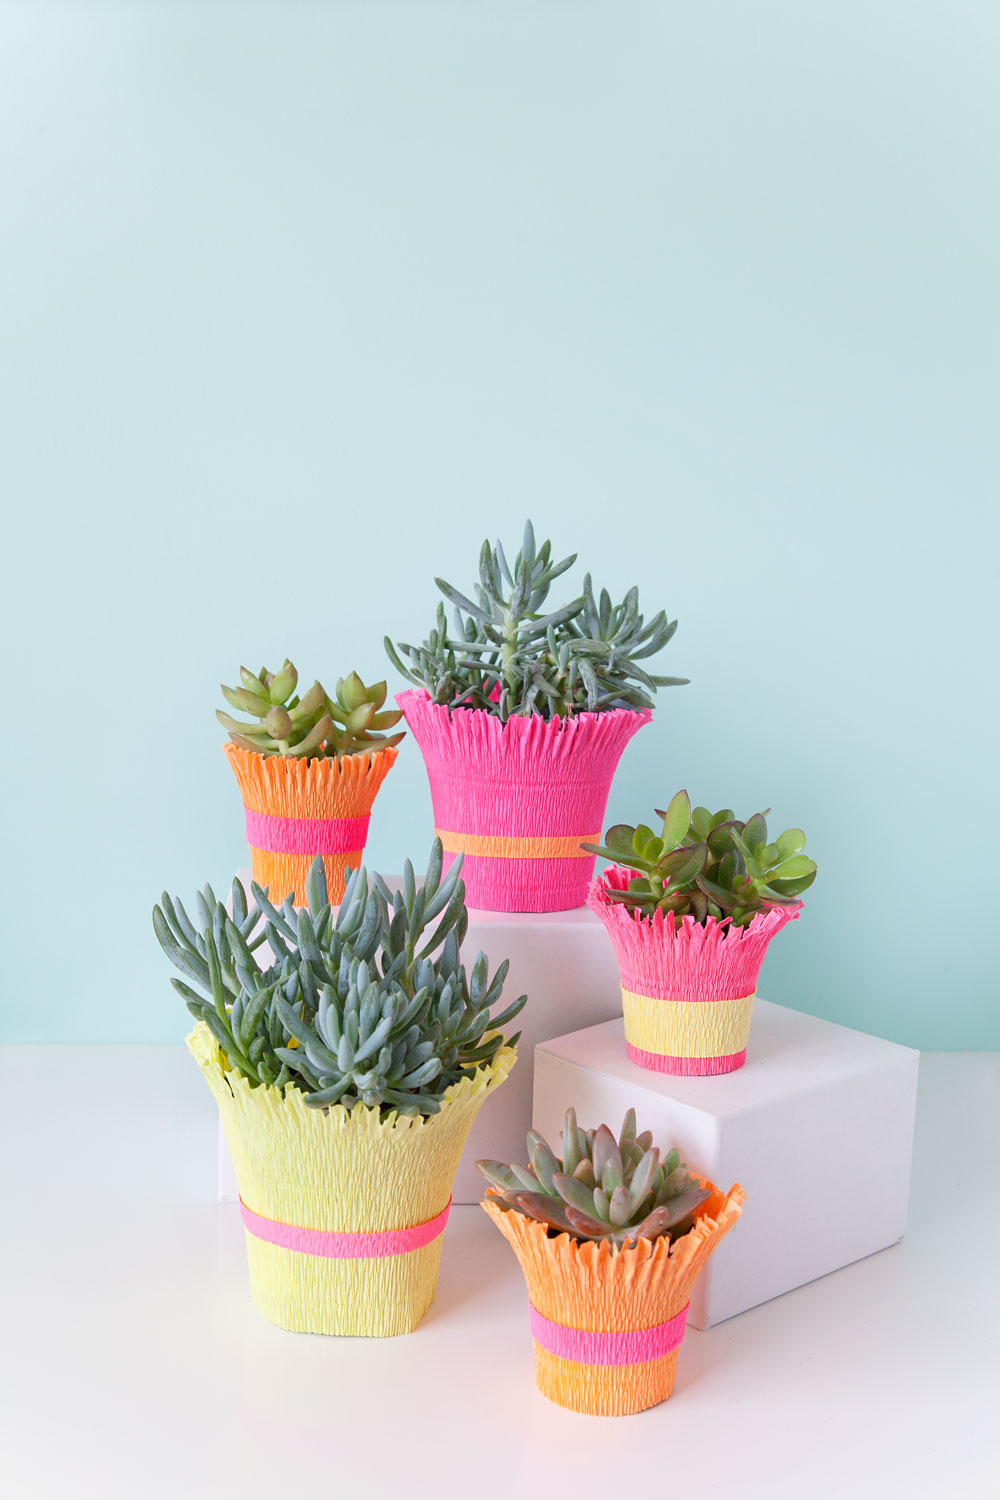 DIY-crepe-paper-wrapped-pots-an-easy-diy-for-table-and-party-decor